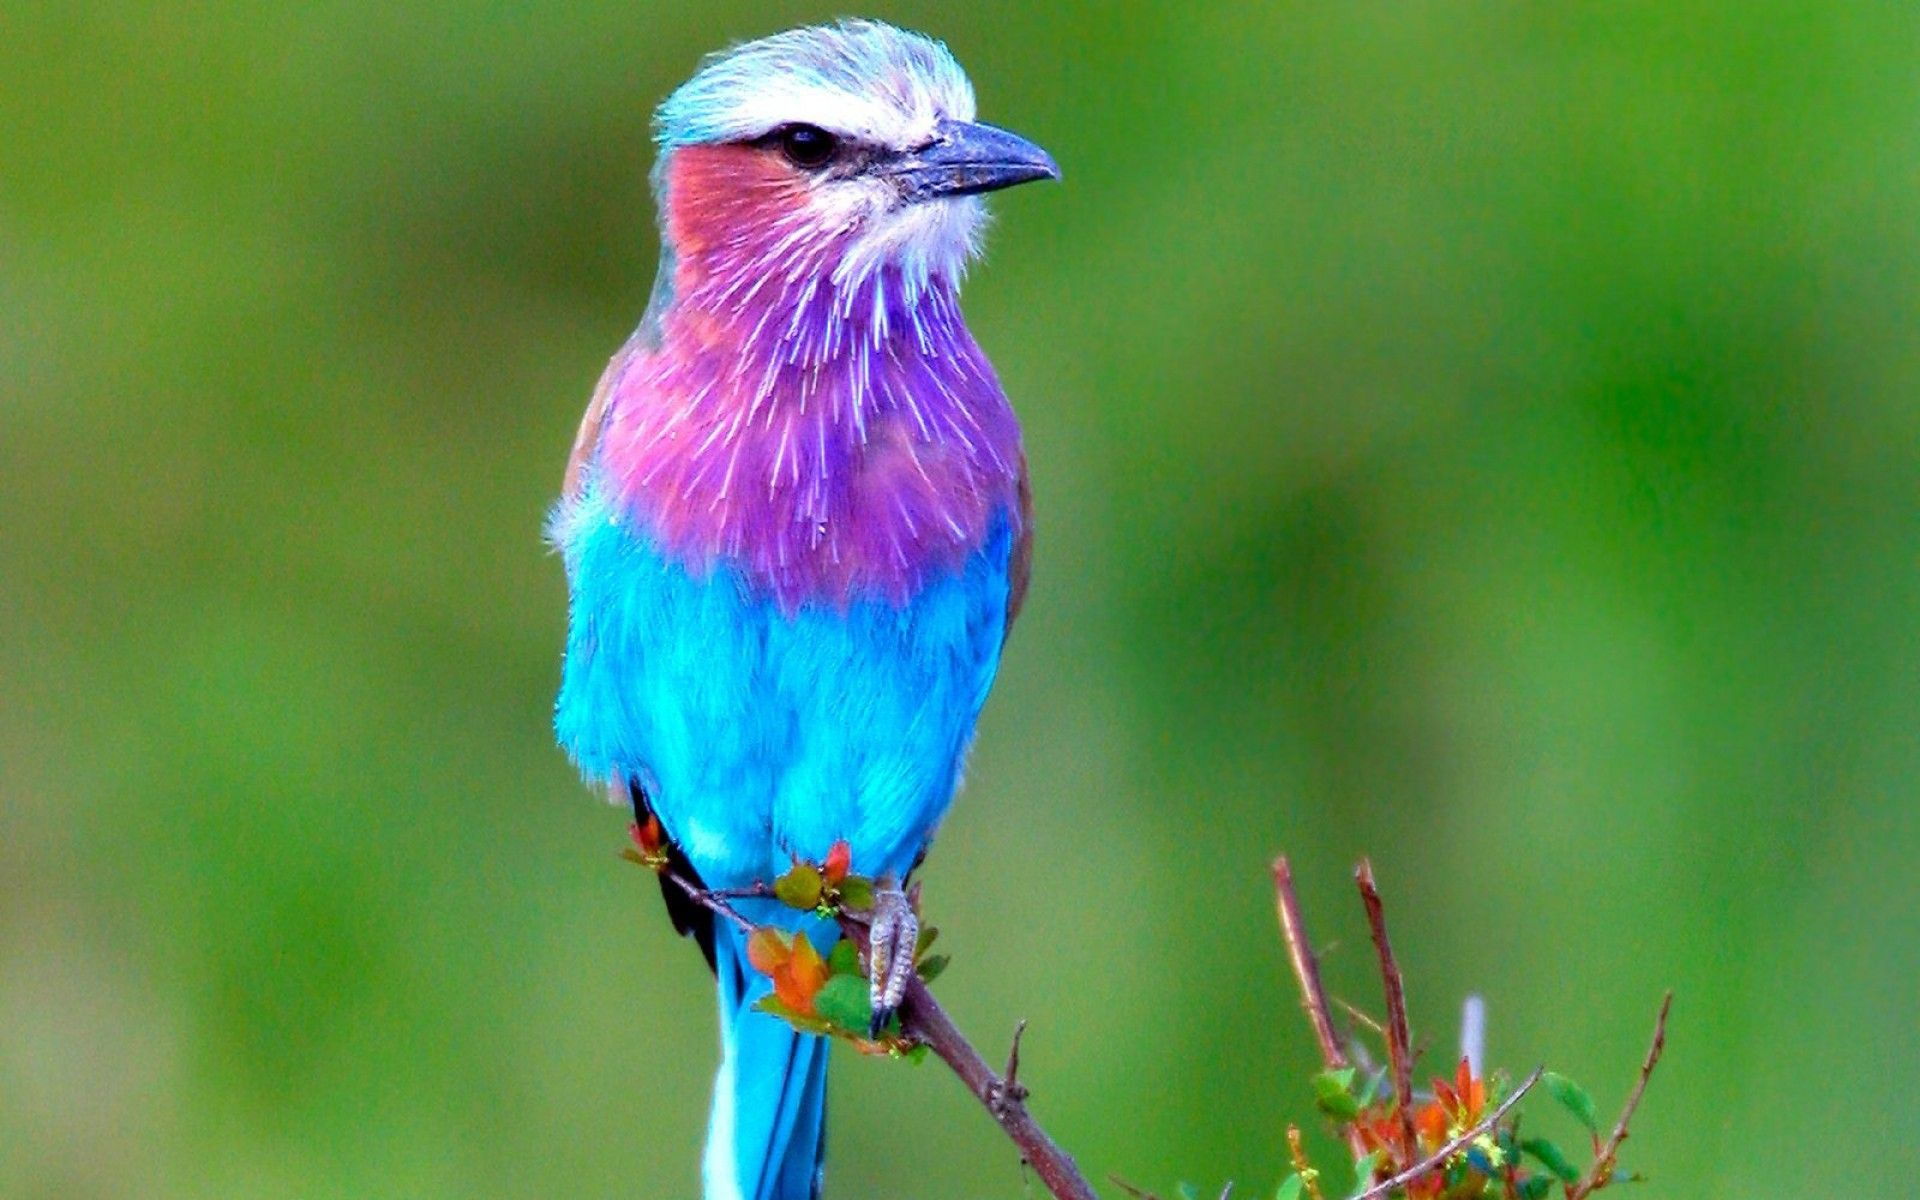 Lilac Breated Roller - Lilac breasted rollers are one of the most beautiful colored birds in the world. Description from pinterest.com. I searched for this on bing.com/images